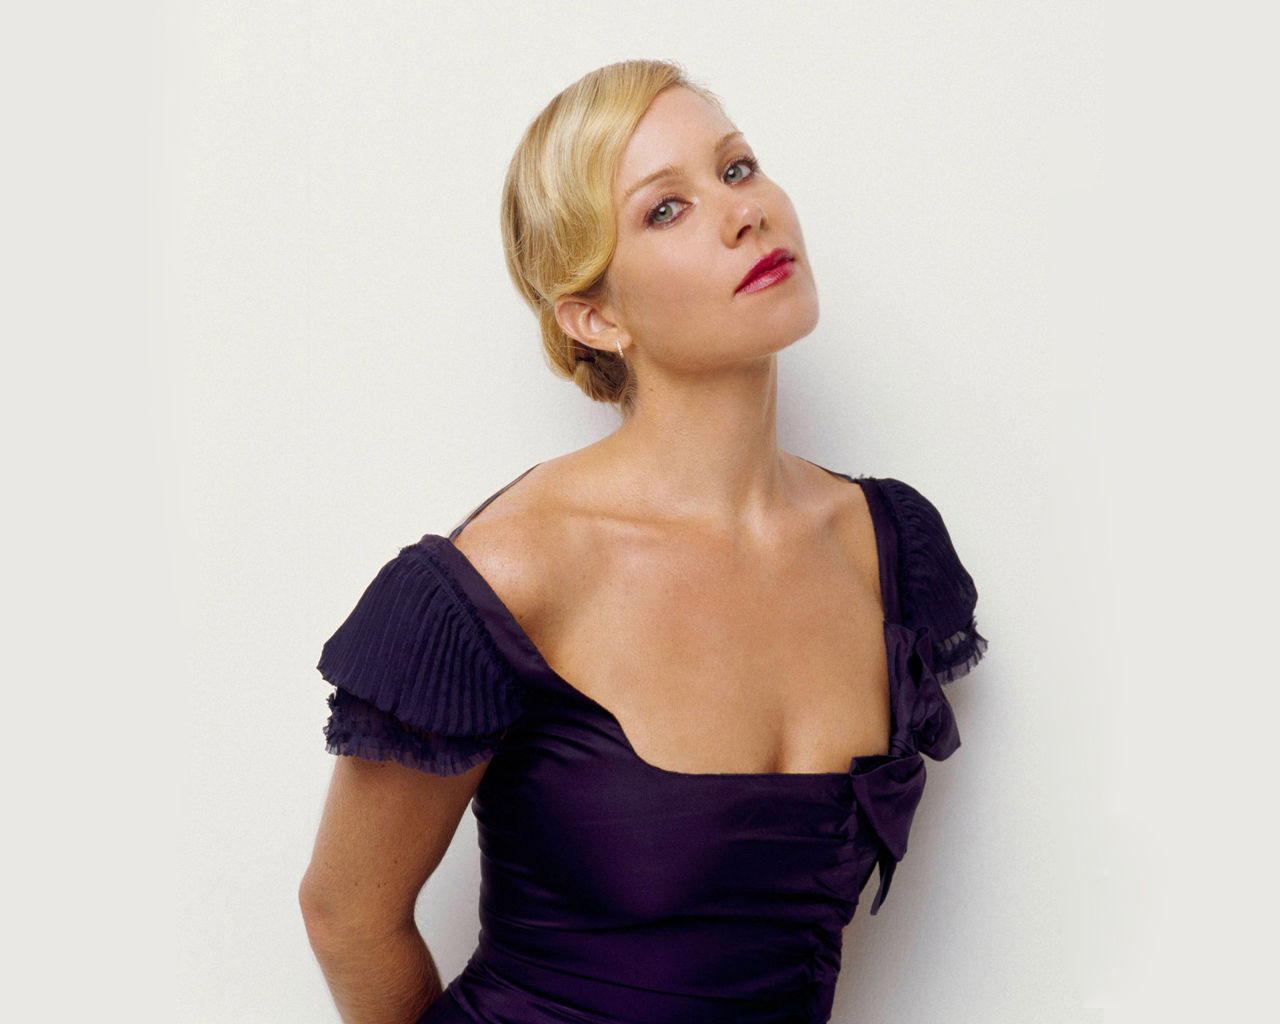 Christina Applegate - Actress Wallpapers